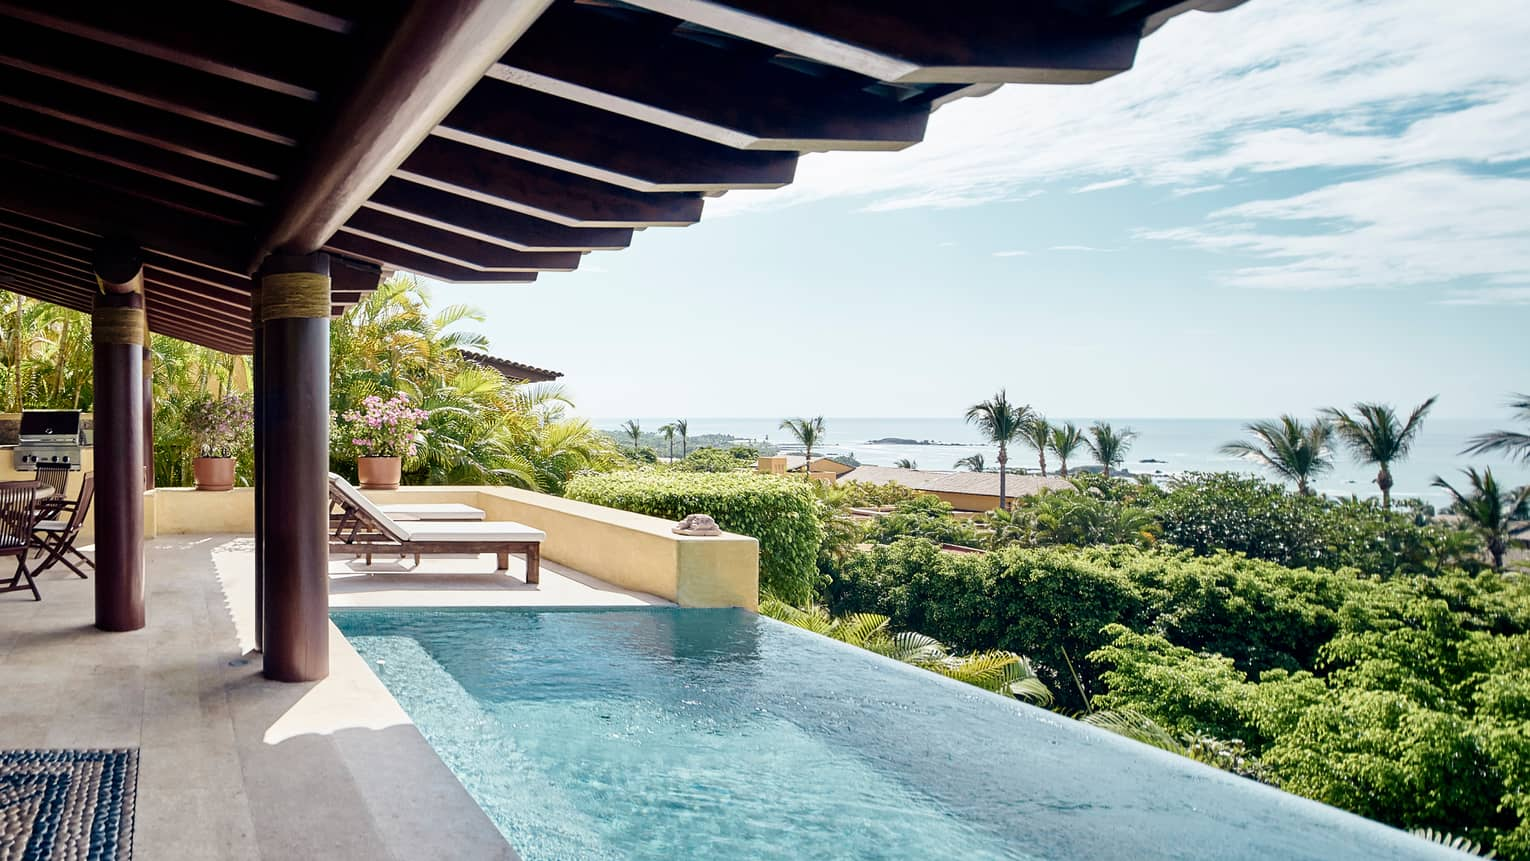 Savour the year-round sunshine by your private pool, with privileged ocean views in every direction